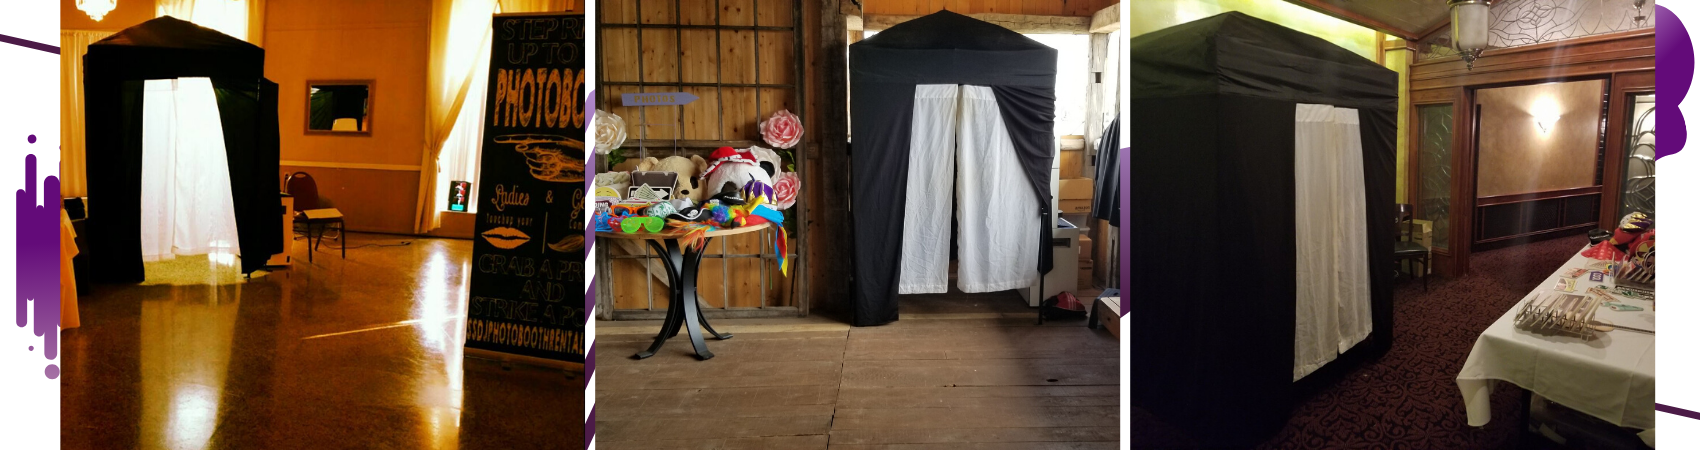 Photo Booth and Props for Party Photos